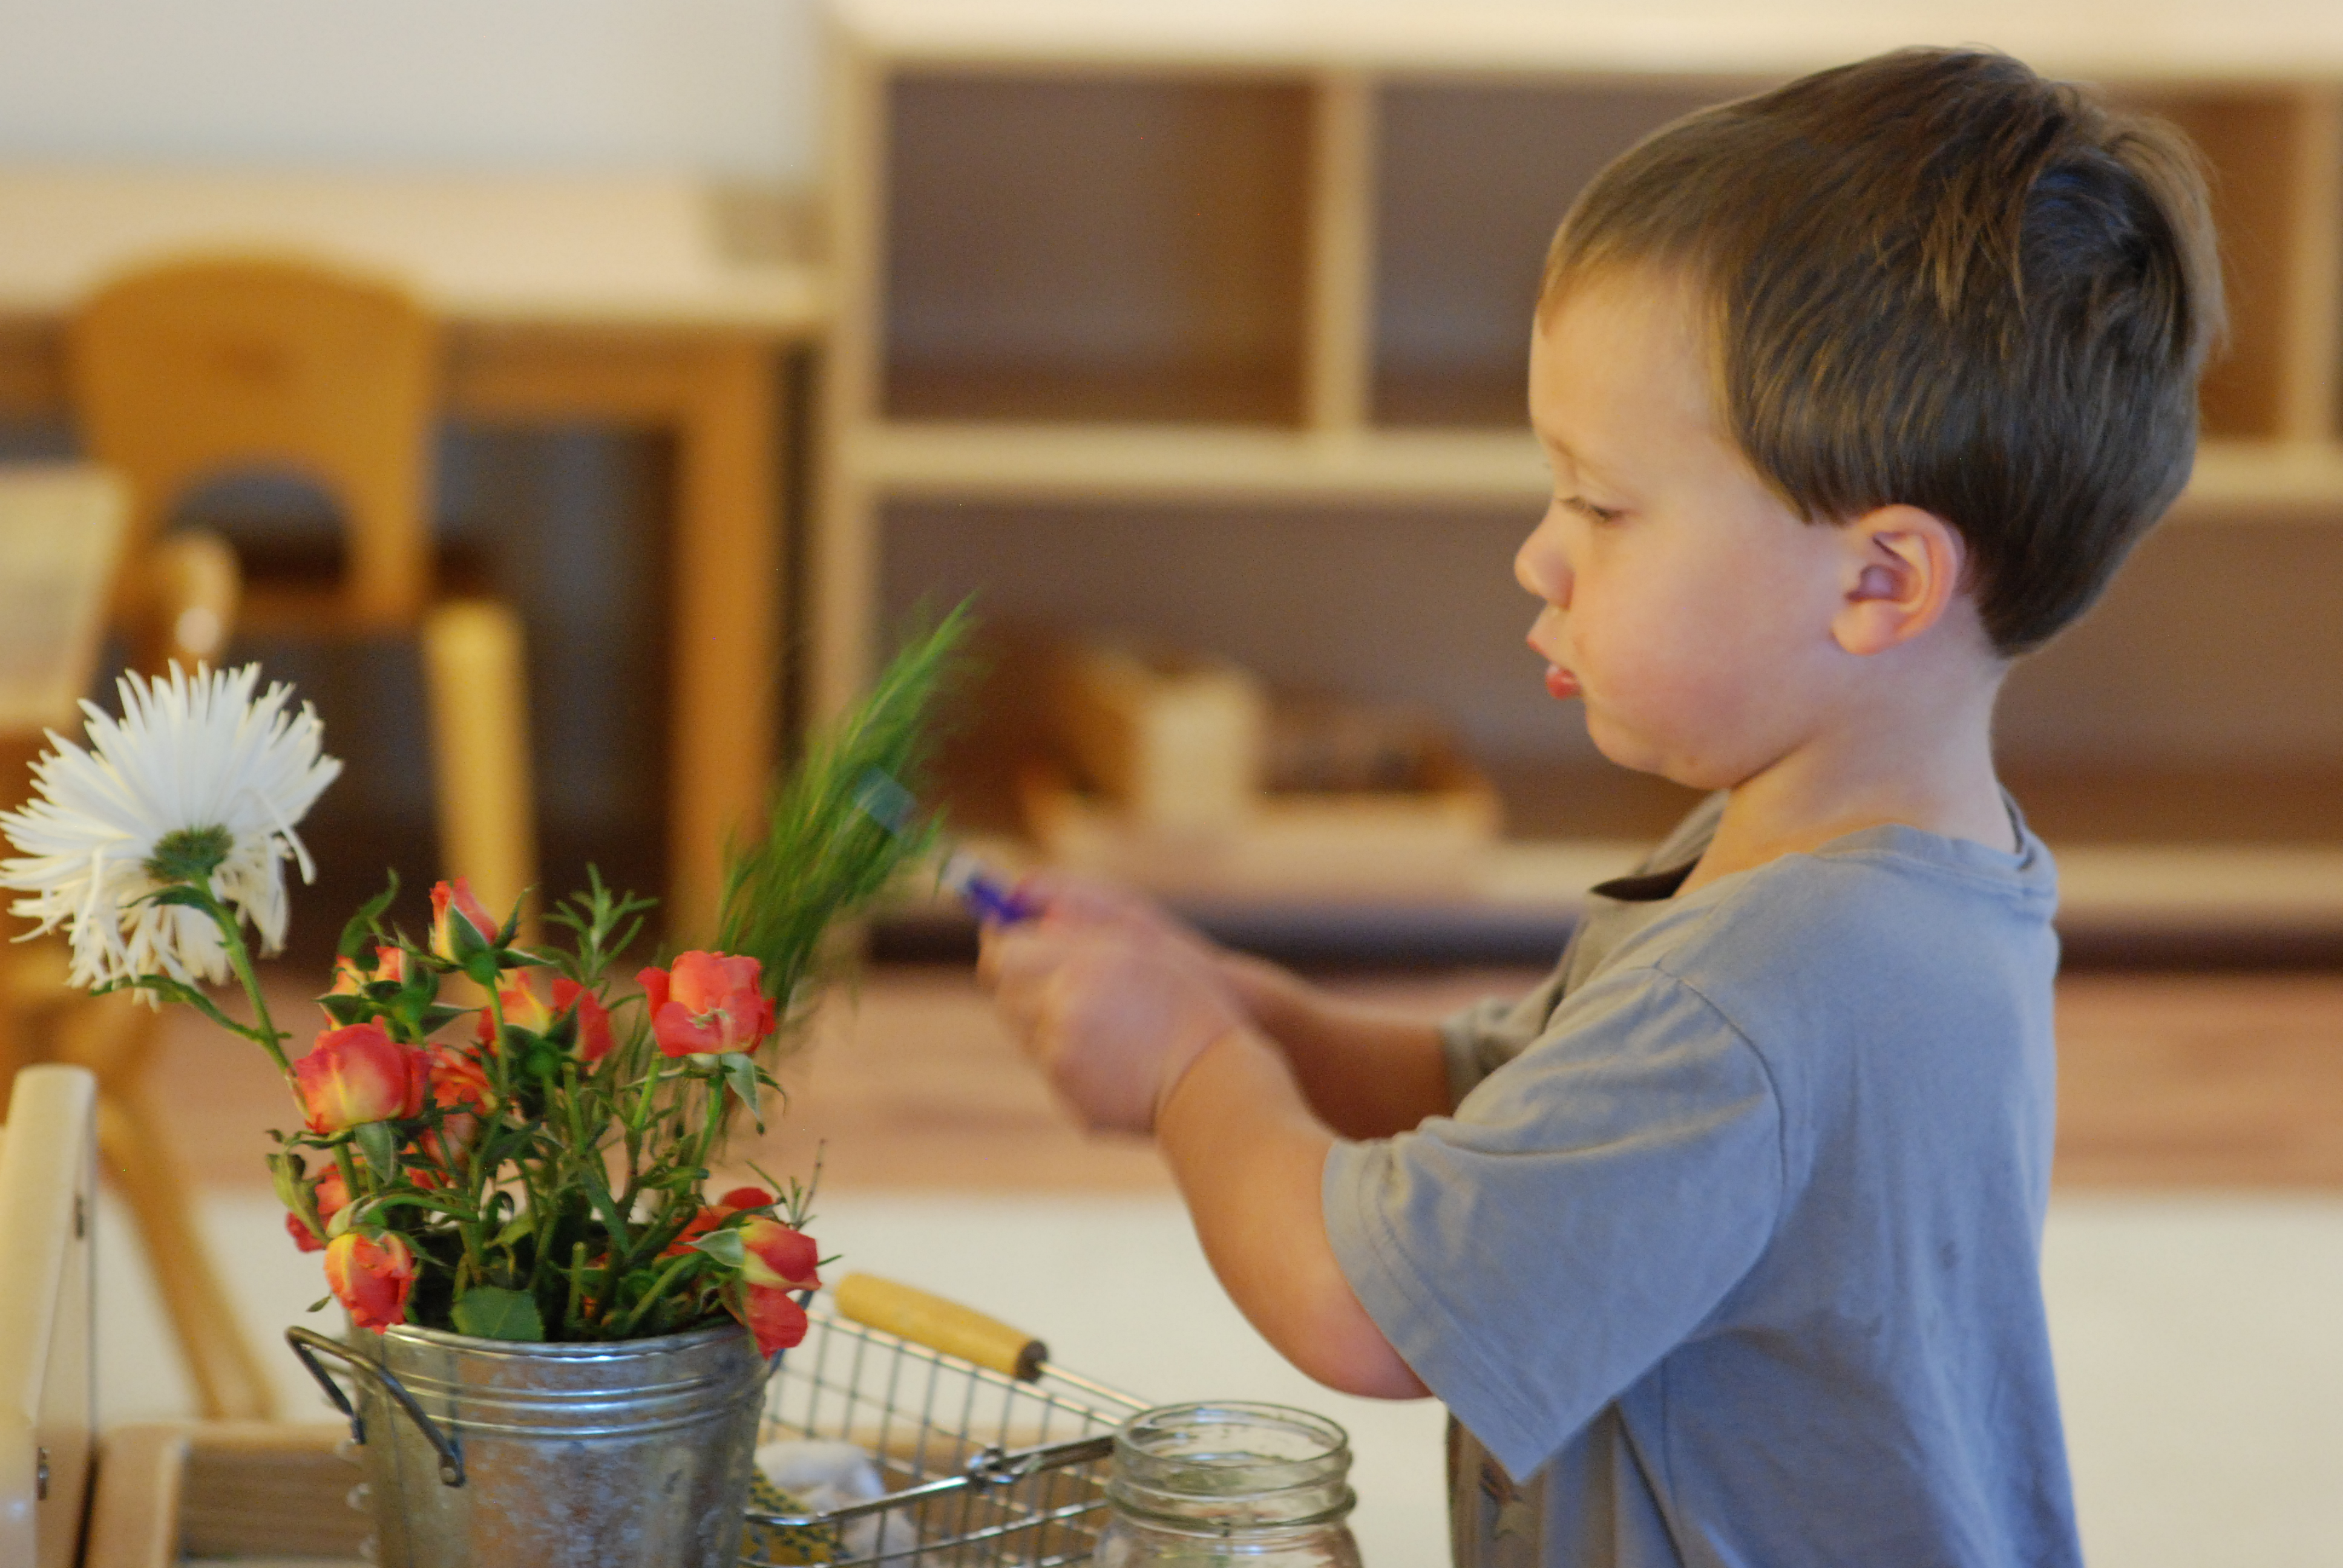 A Pre-K Montessori student tending to flowers in his classroom